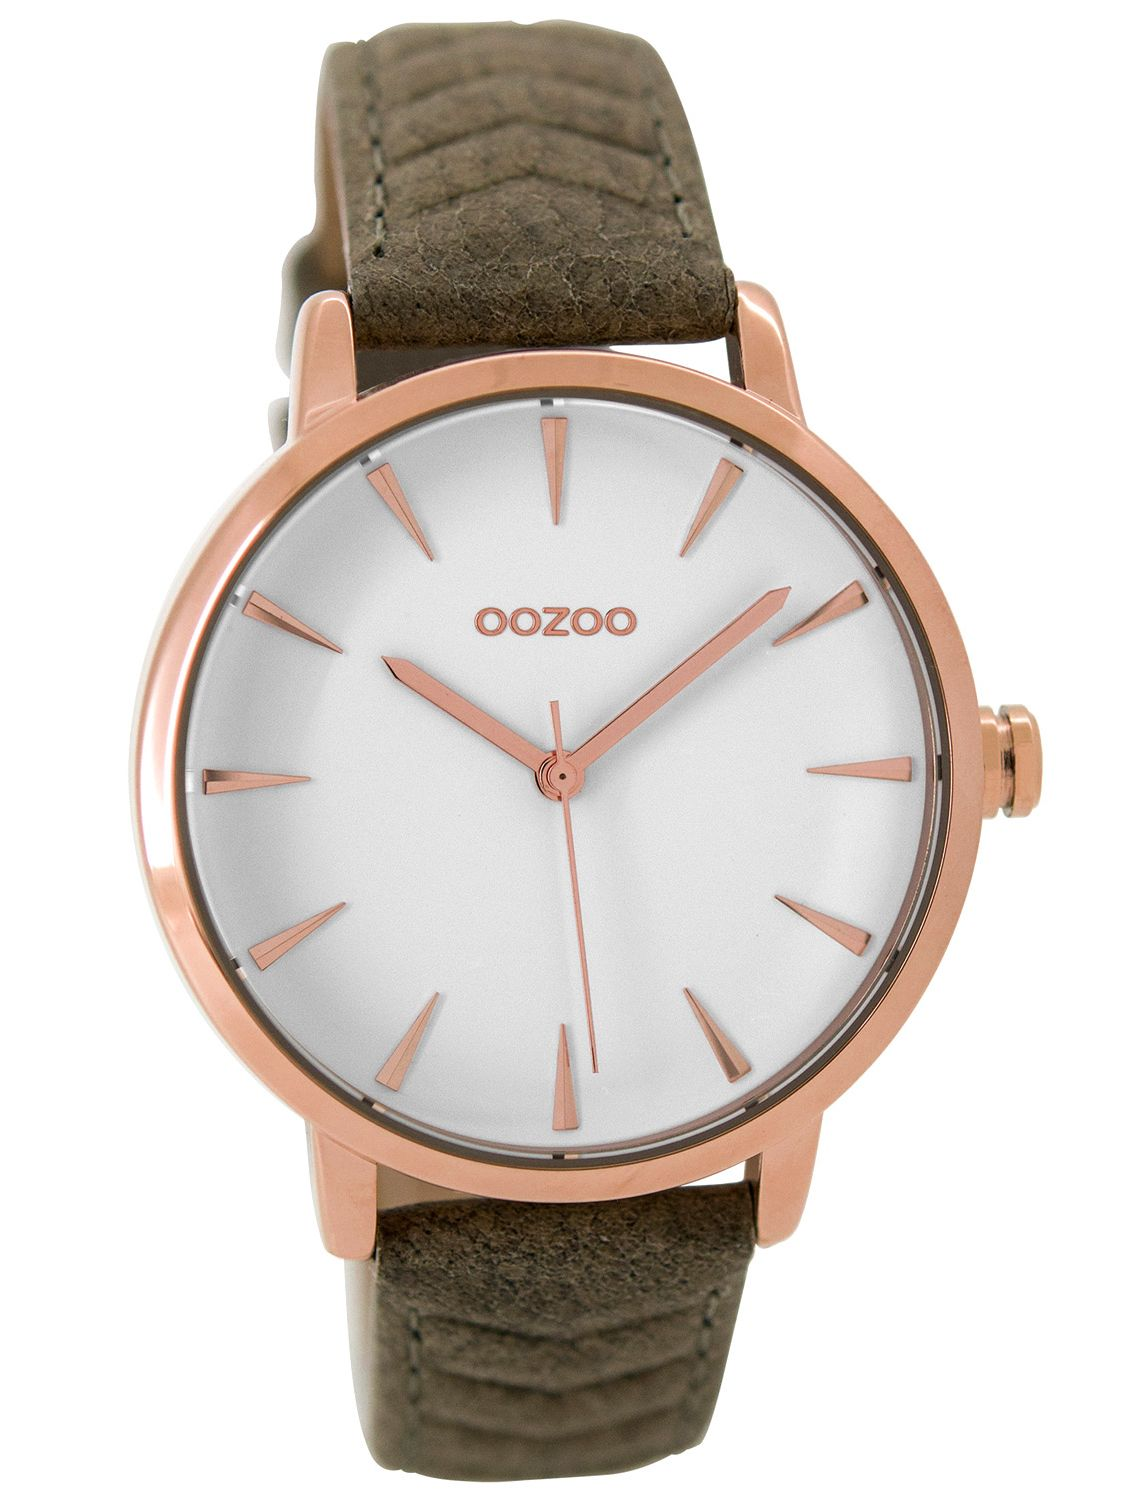 be0c78b1853cd OOZOO Ladies Watch with Leather Strap rose khaki 40 mm C9509